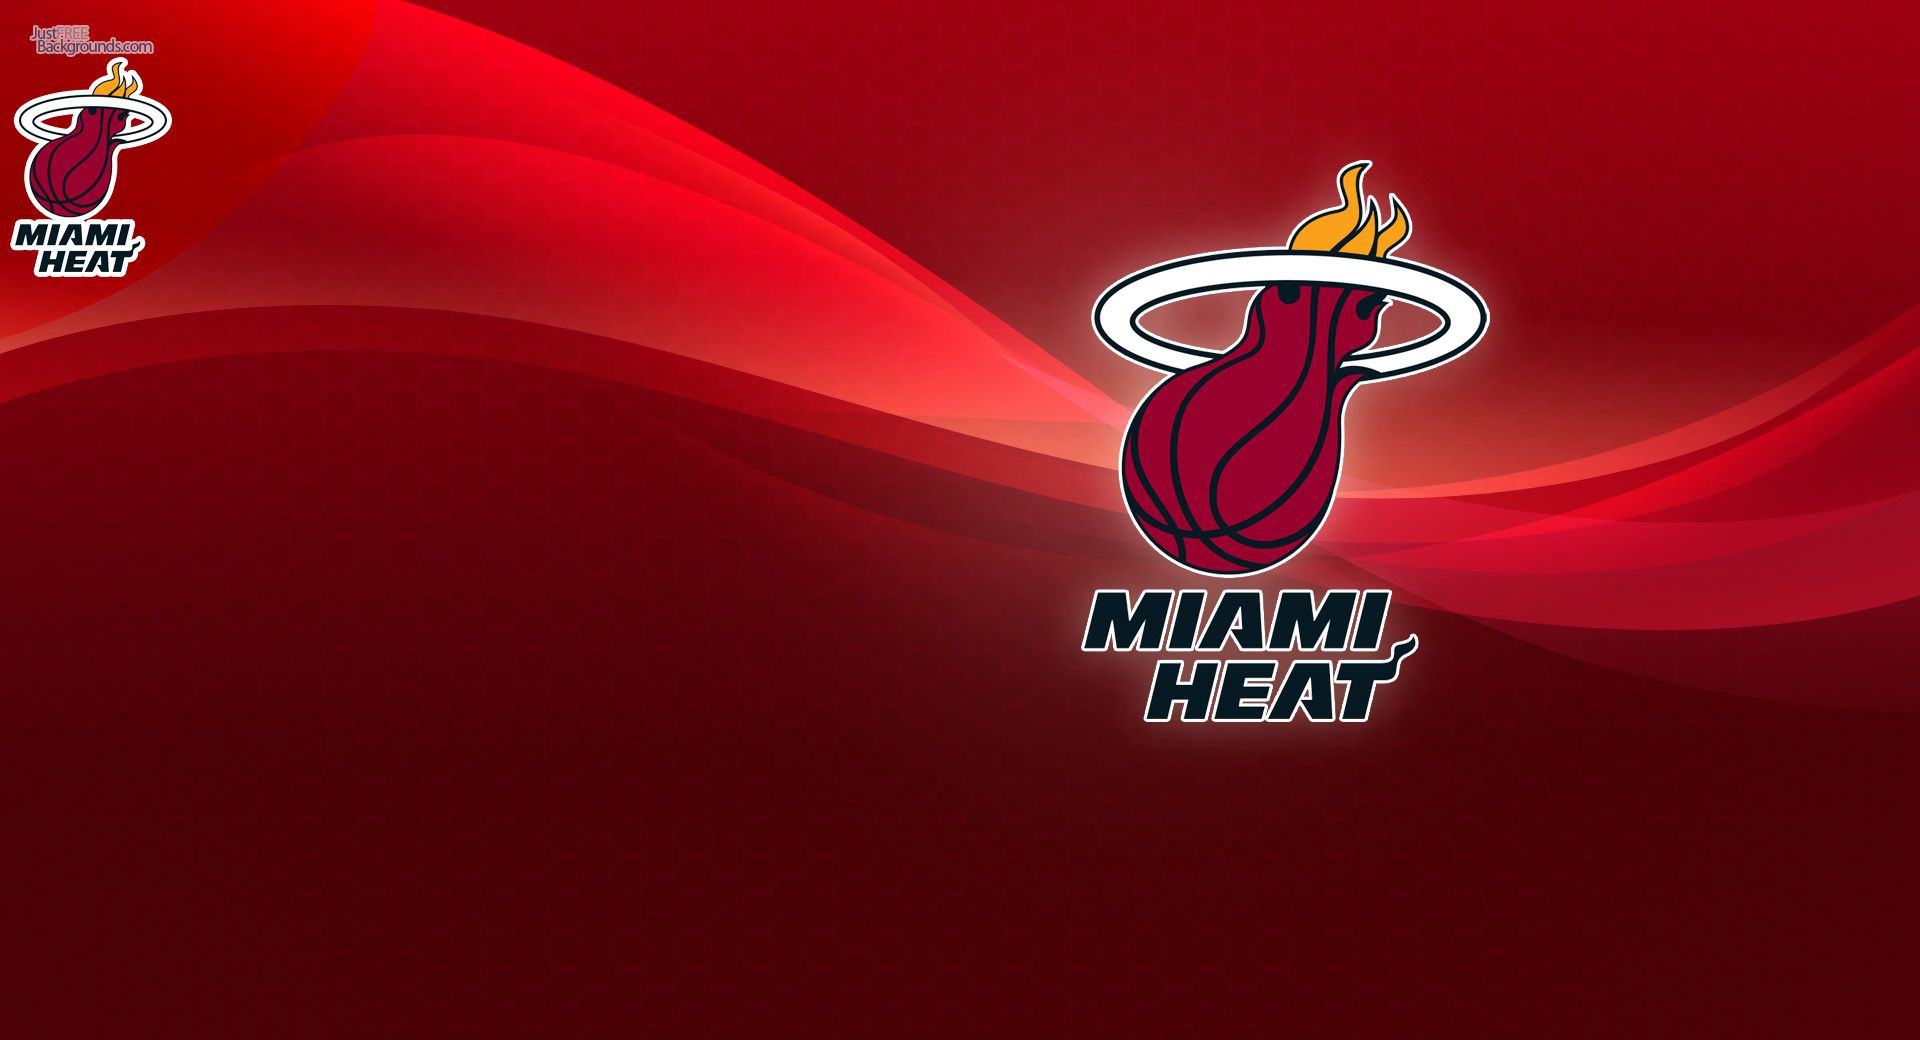 Miami Heat Logo Wallpapers 2015 1920x1040